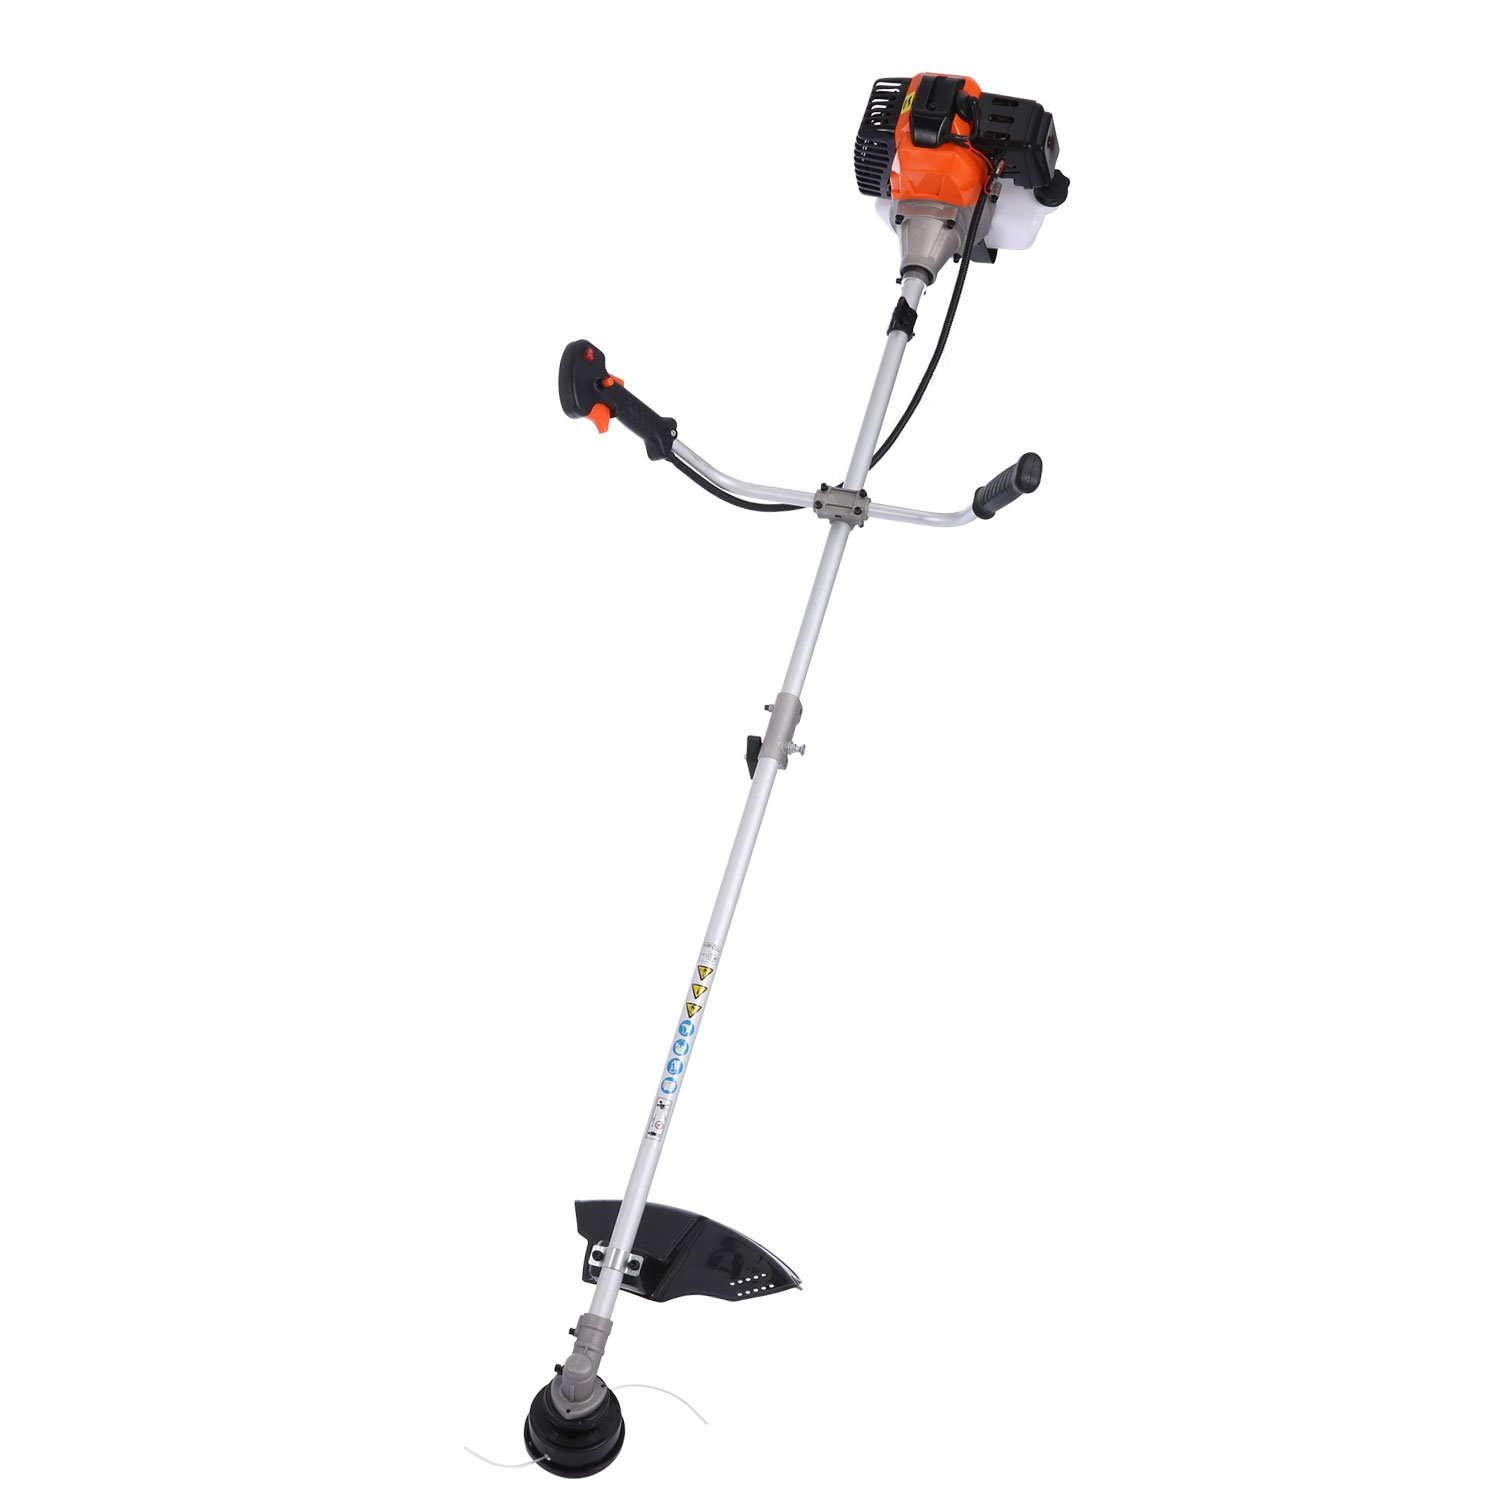 Balanu 2-Cycle Gas Powered Straight Shaft String Trimmer and Brush Cutter Combo, Perfect for Lawn/Garden Weed